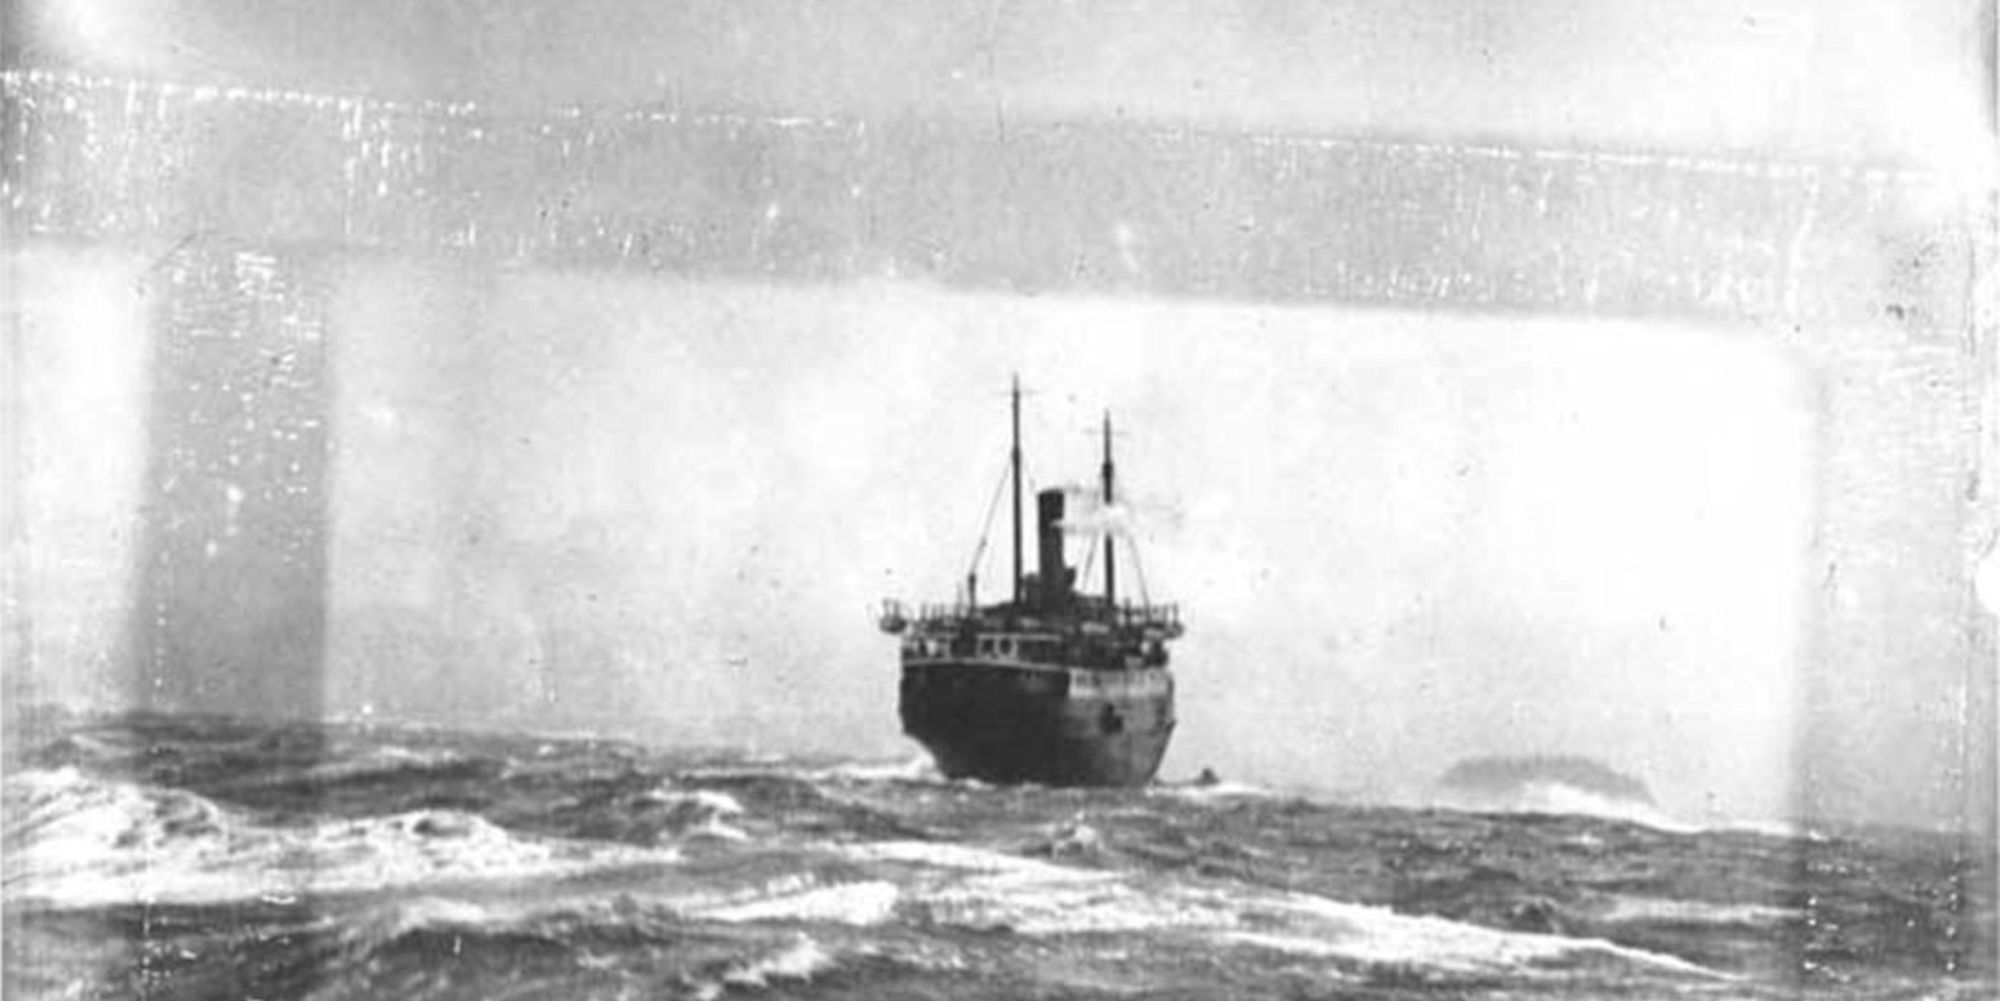 The doomed ship that haunted a generation